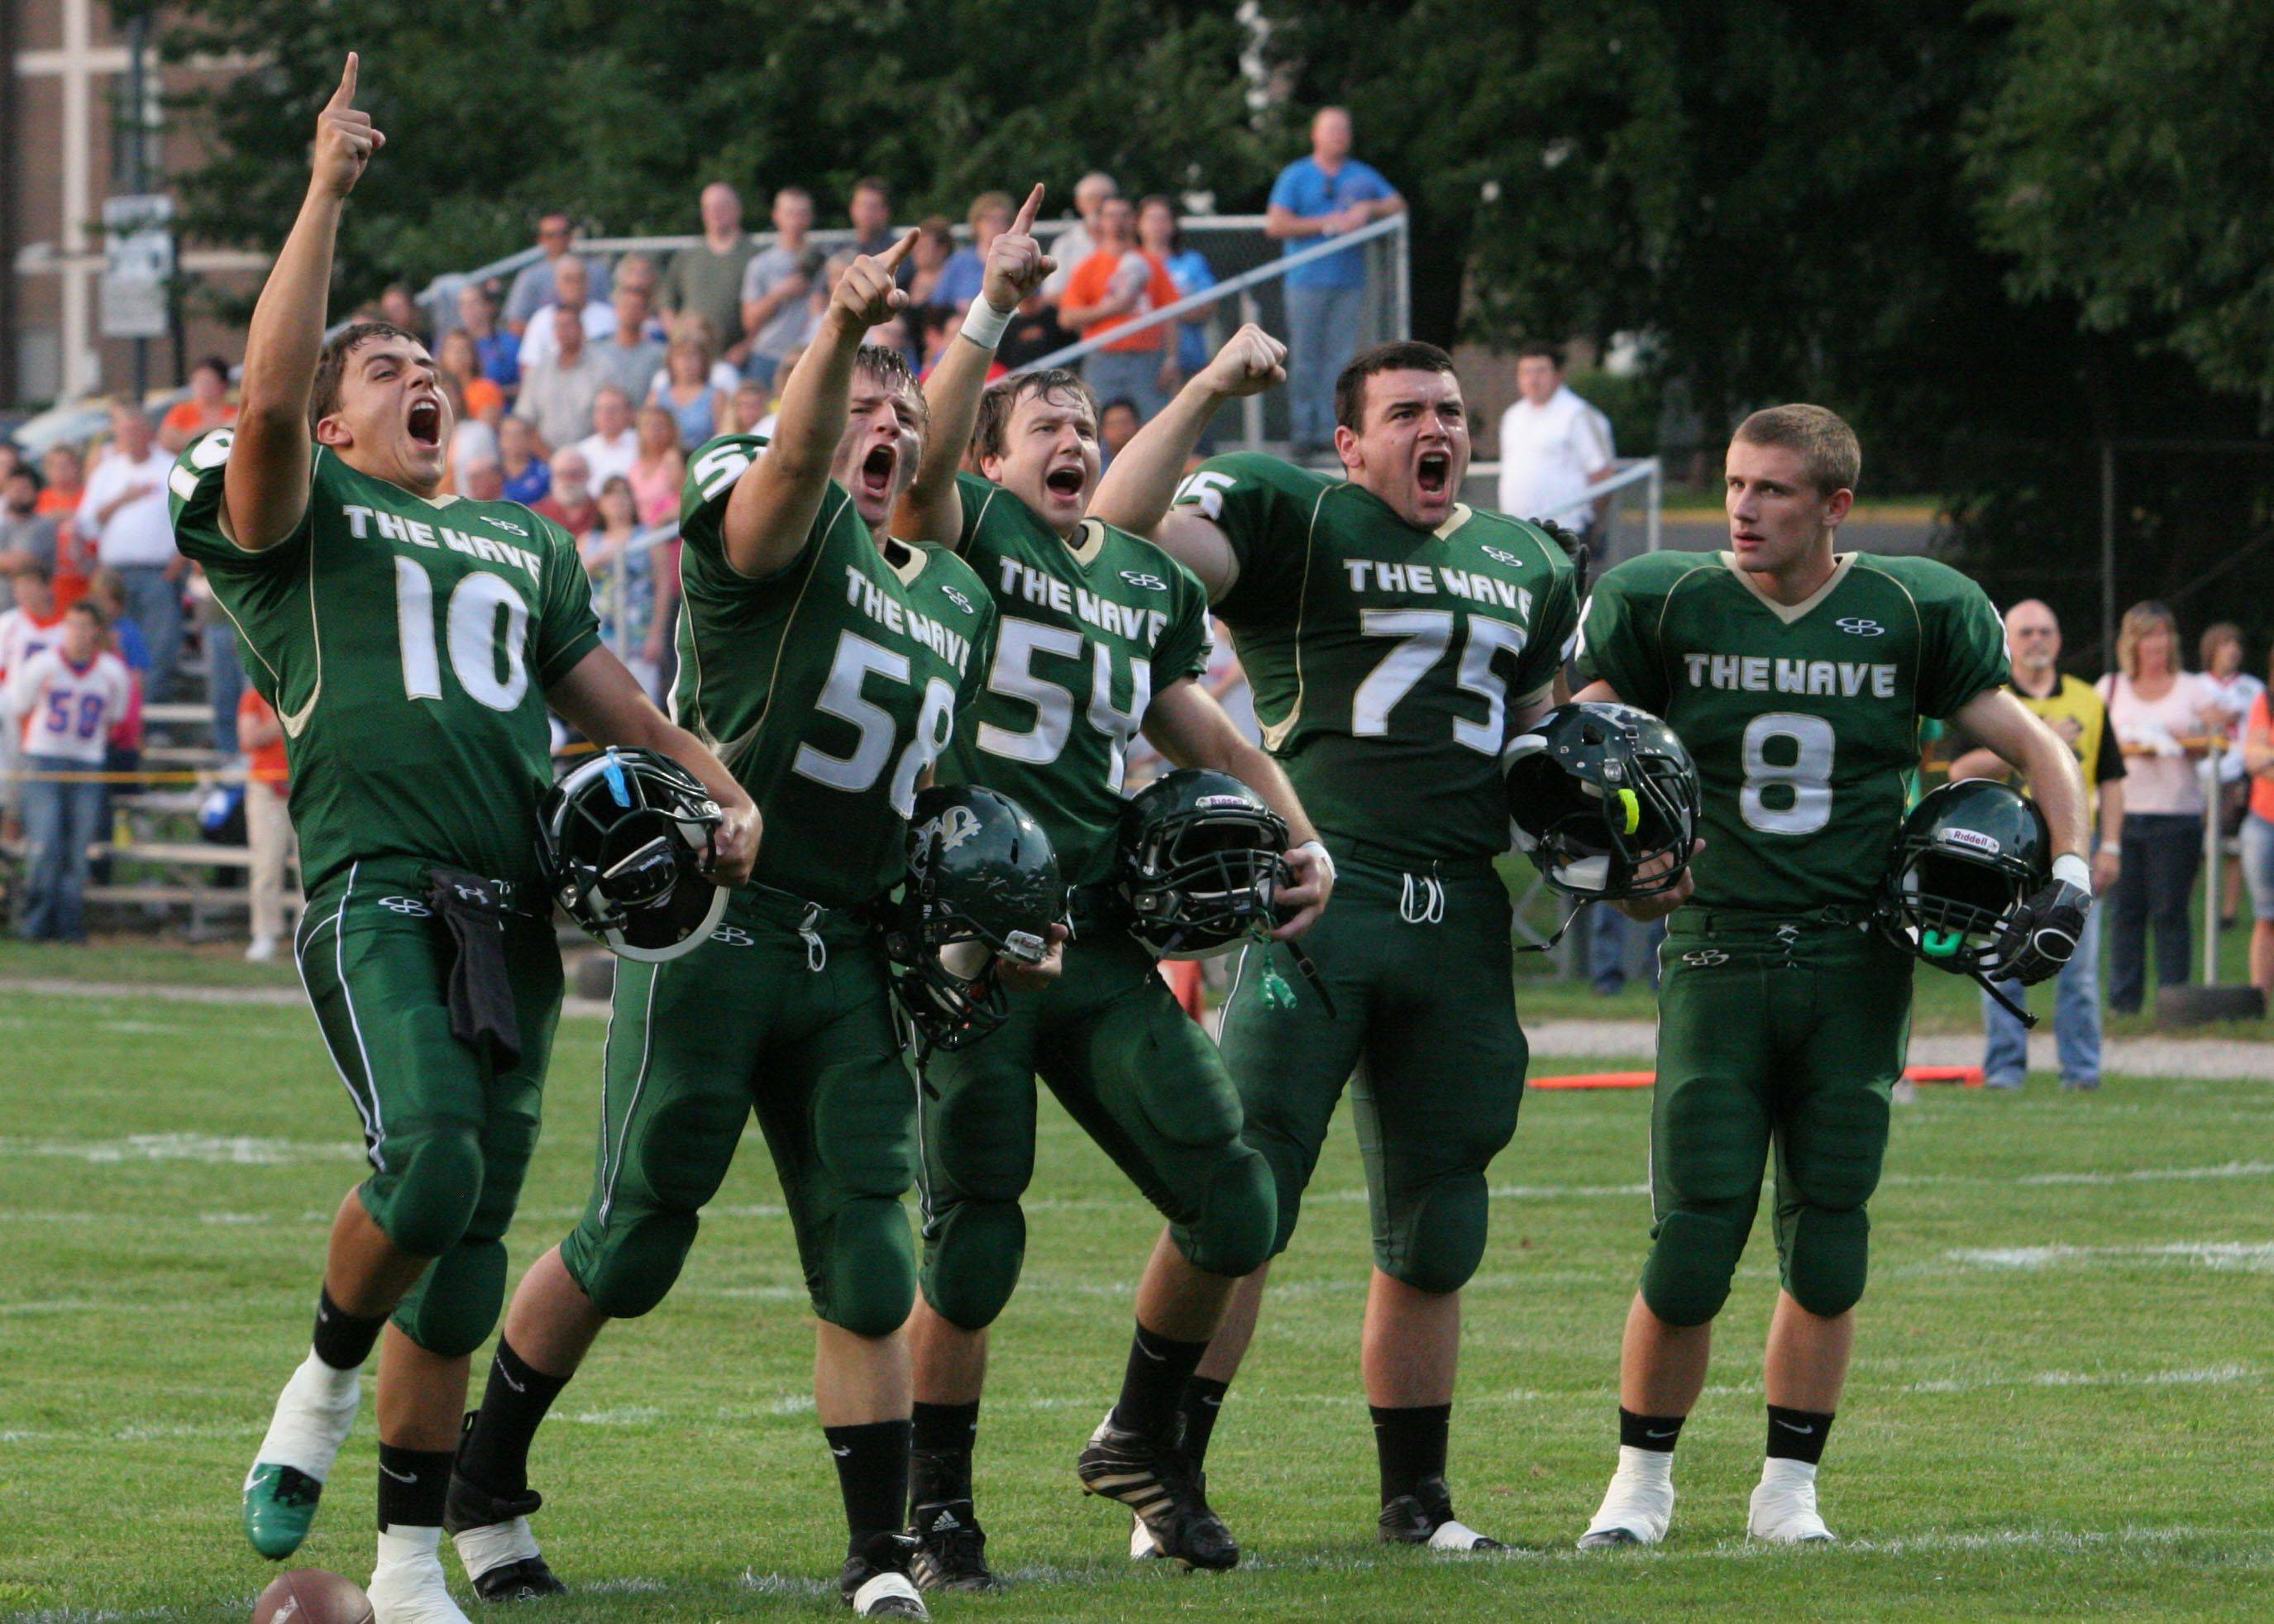 Images from St. Edward vs. Genoa-Kingston football at Greg True Field in Elgin on Friday, Aug. 26, 2011.